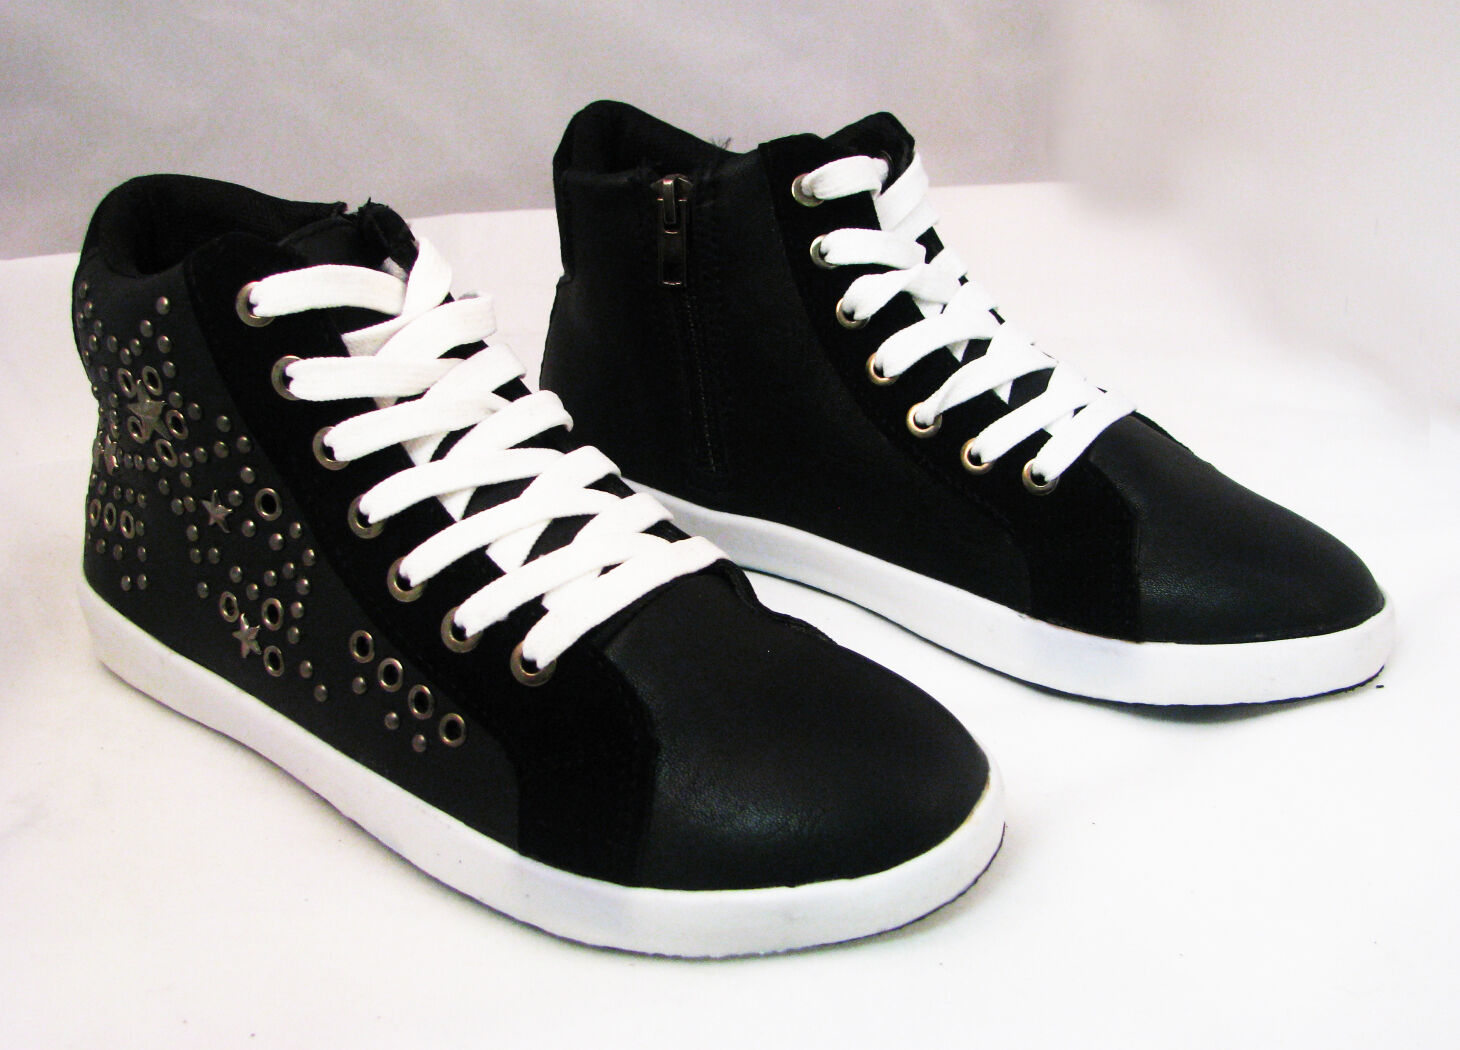 New Women's Studded Sneaker Leather High Top Shoes Spike Zipper Boots Sizes:5-11